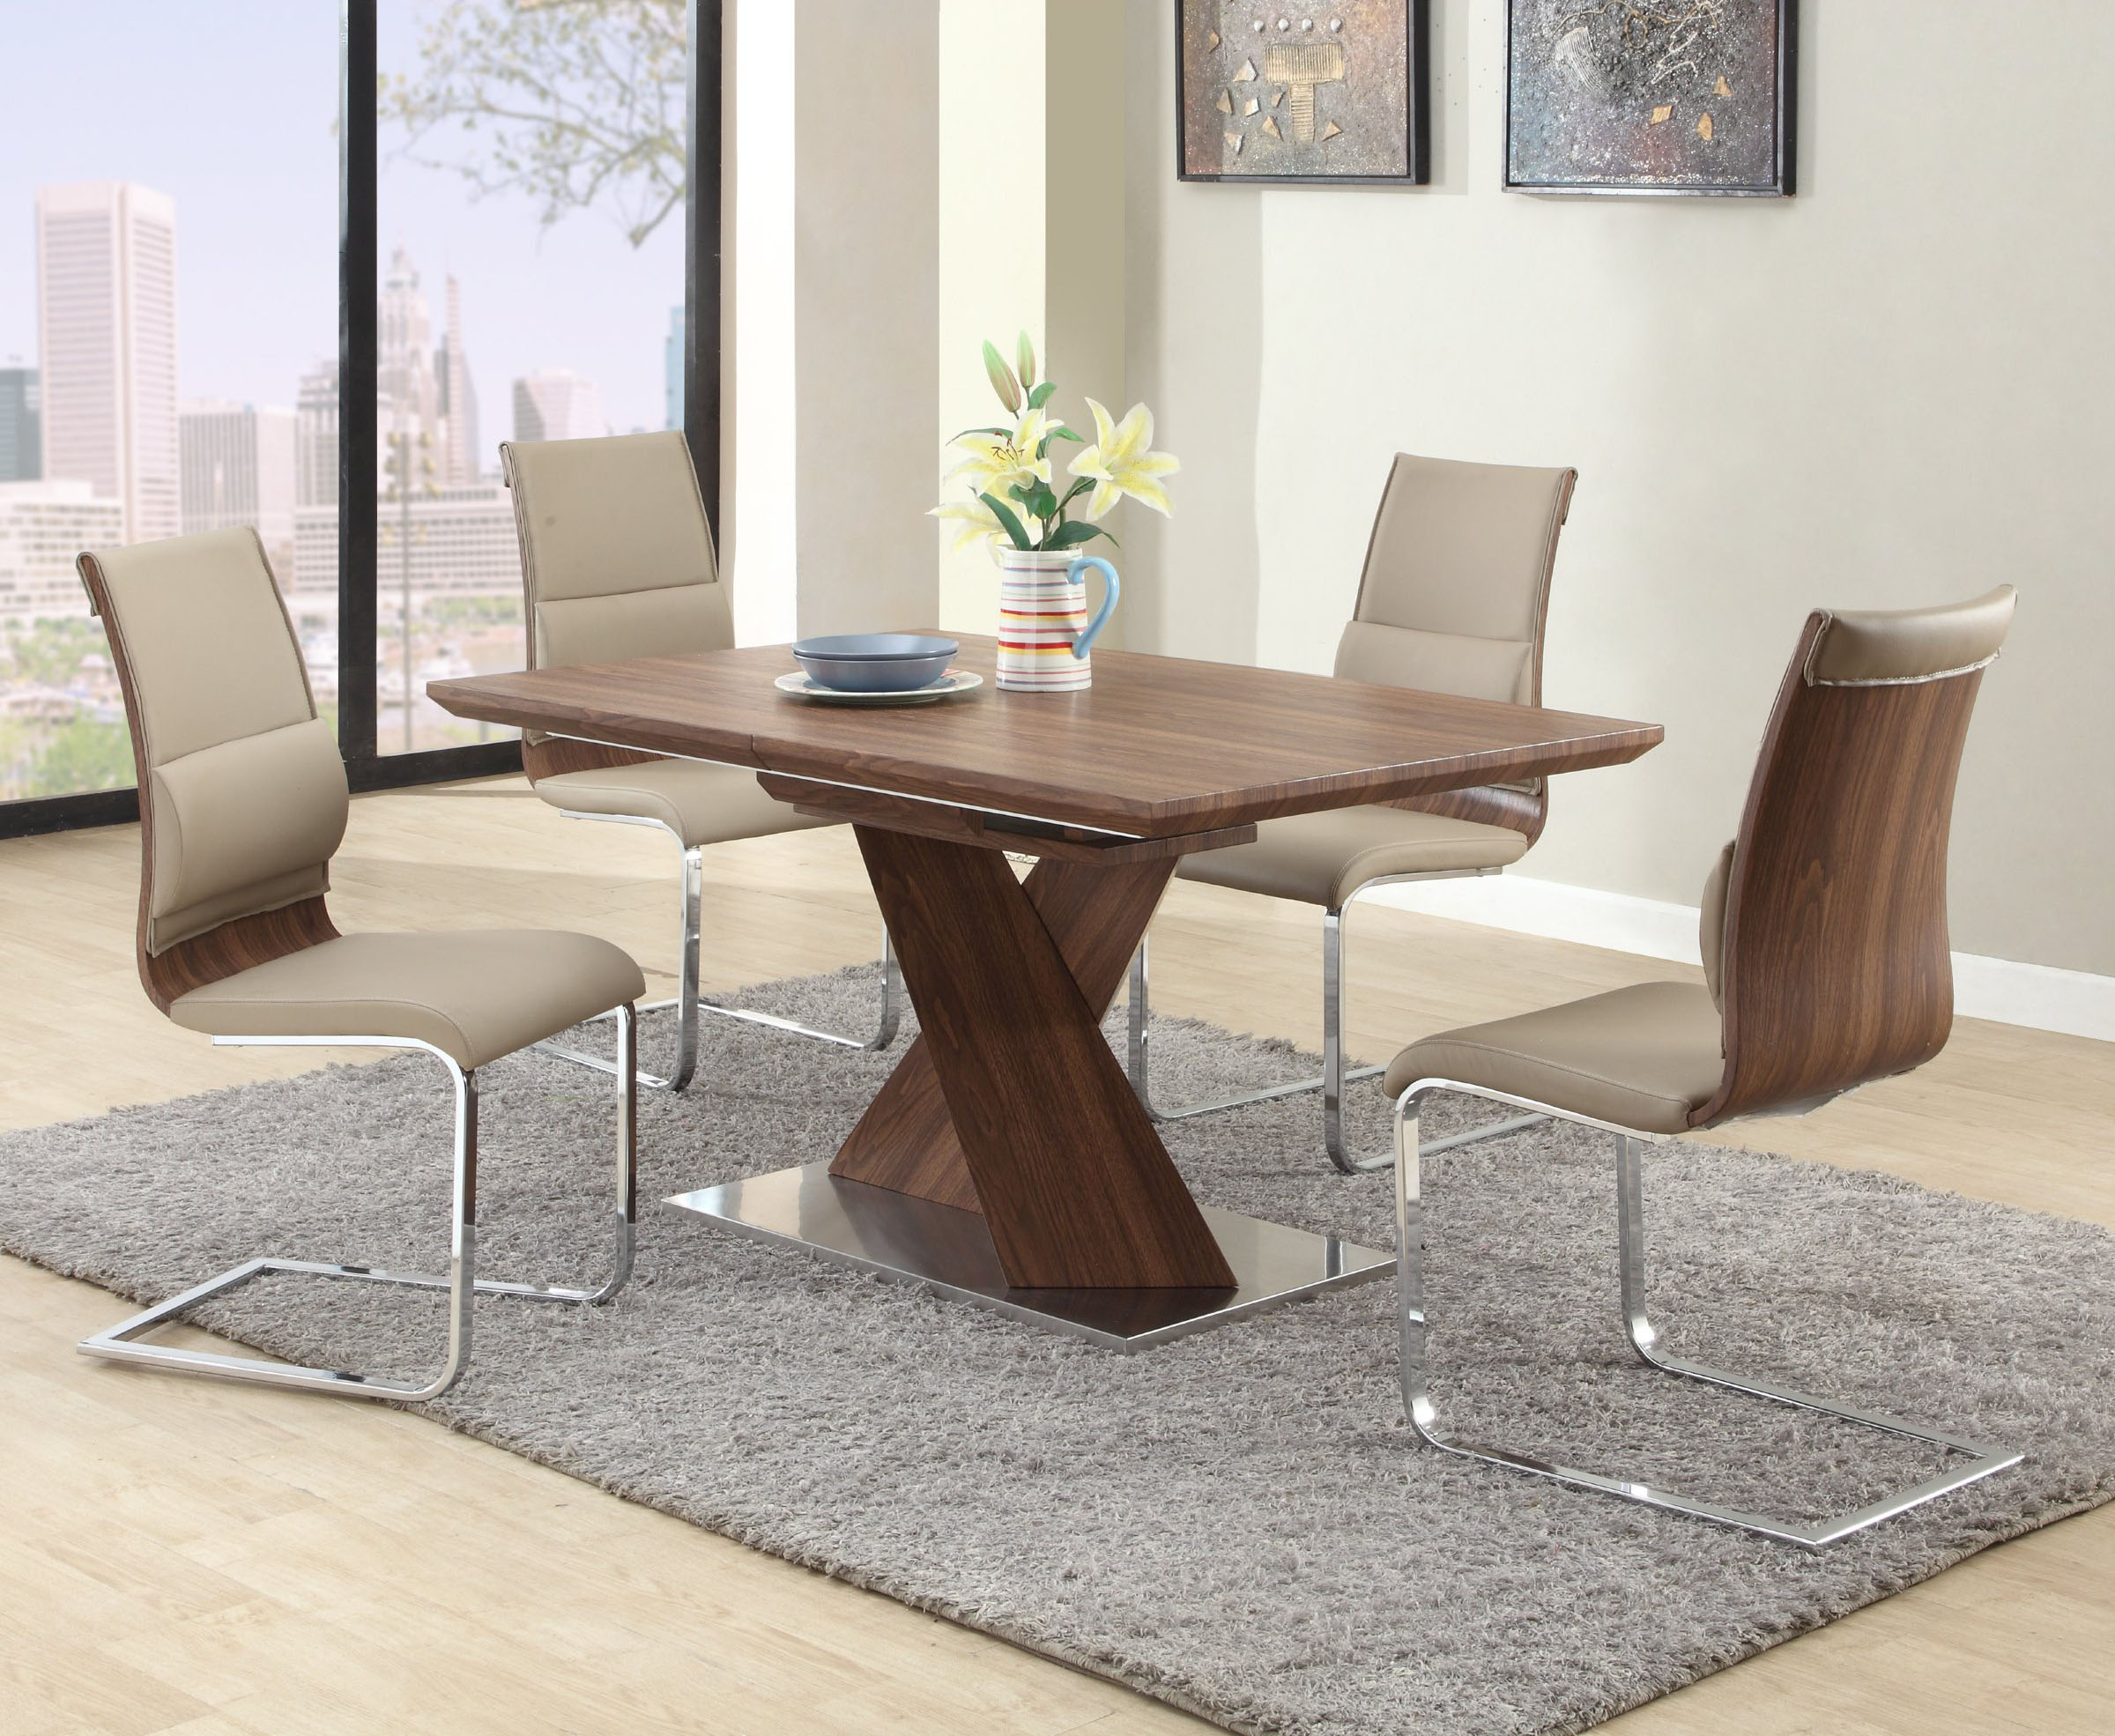 Extendable In Wood Modern Dining Room Las Vegas Nevada CHBET